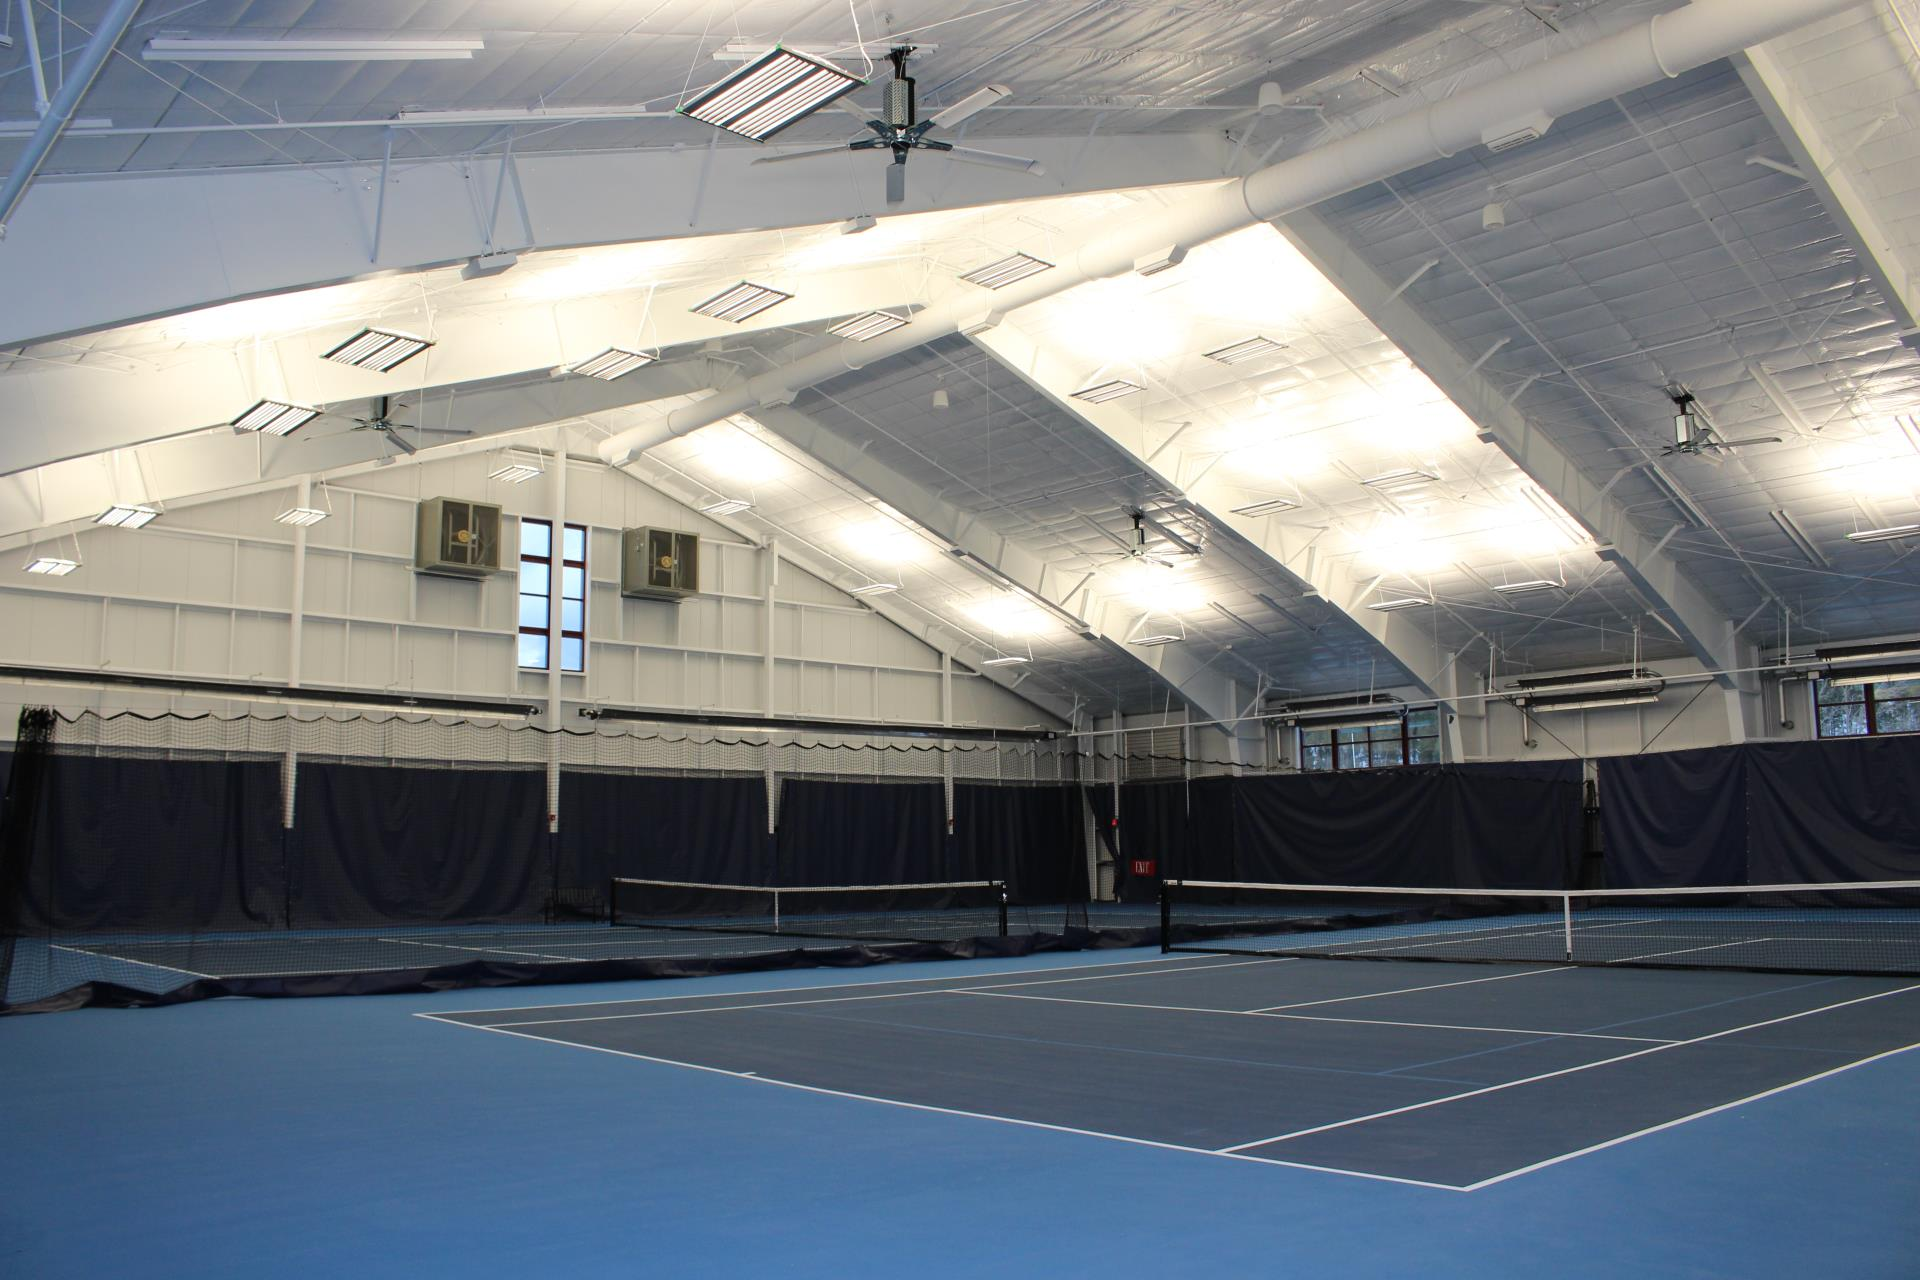 Interior of Breckenridge Tennis Center with two blue tennis courts